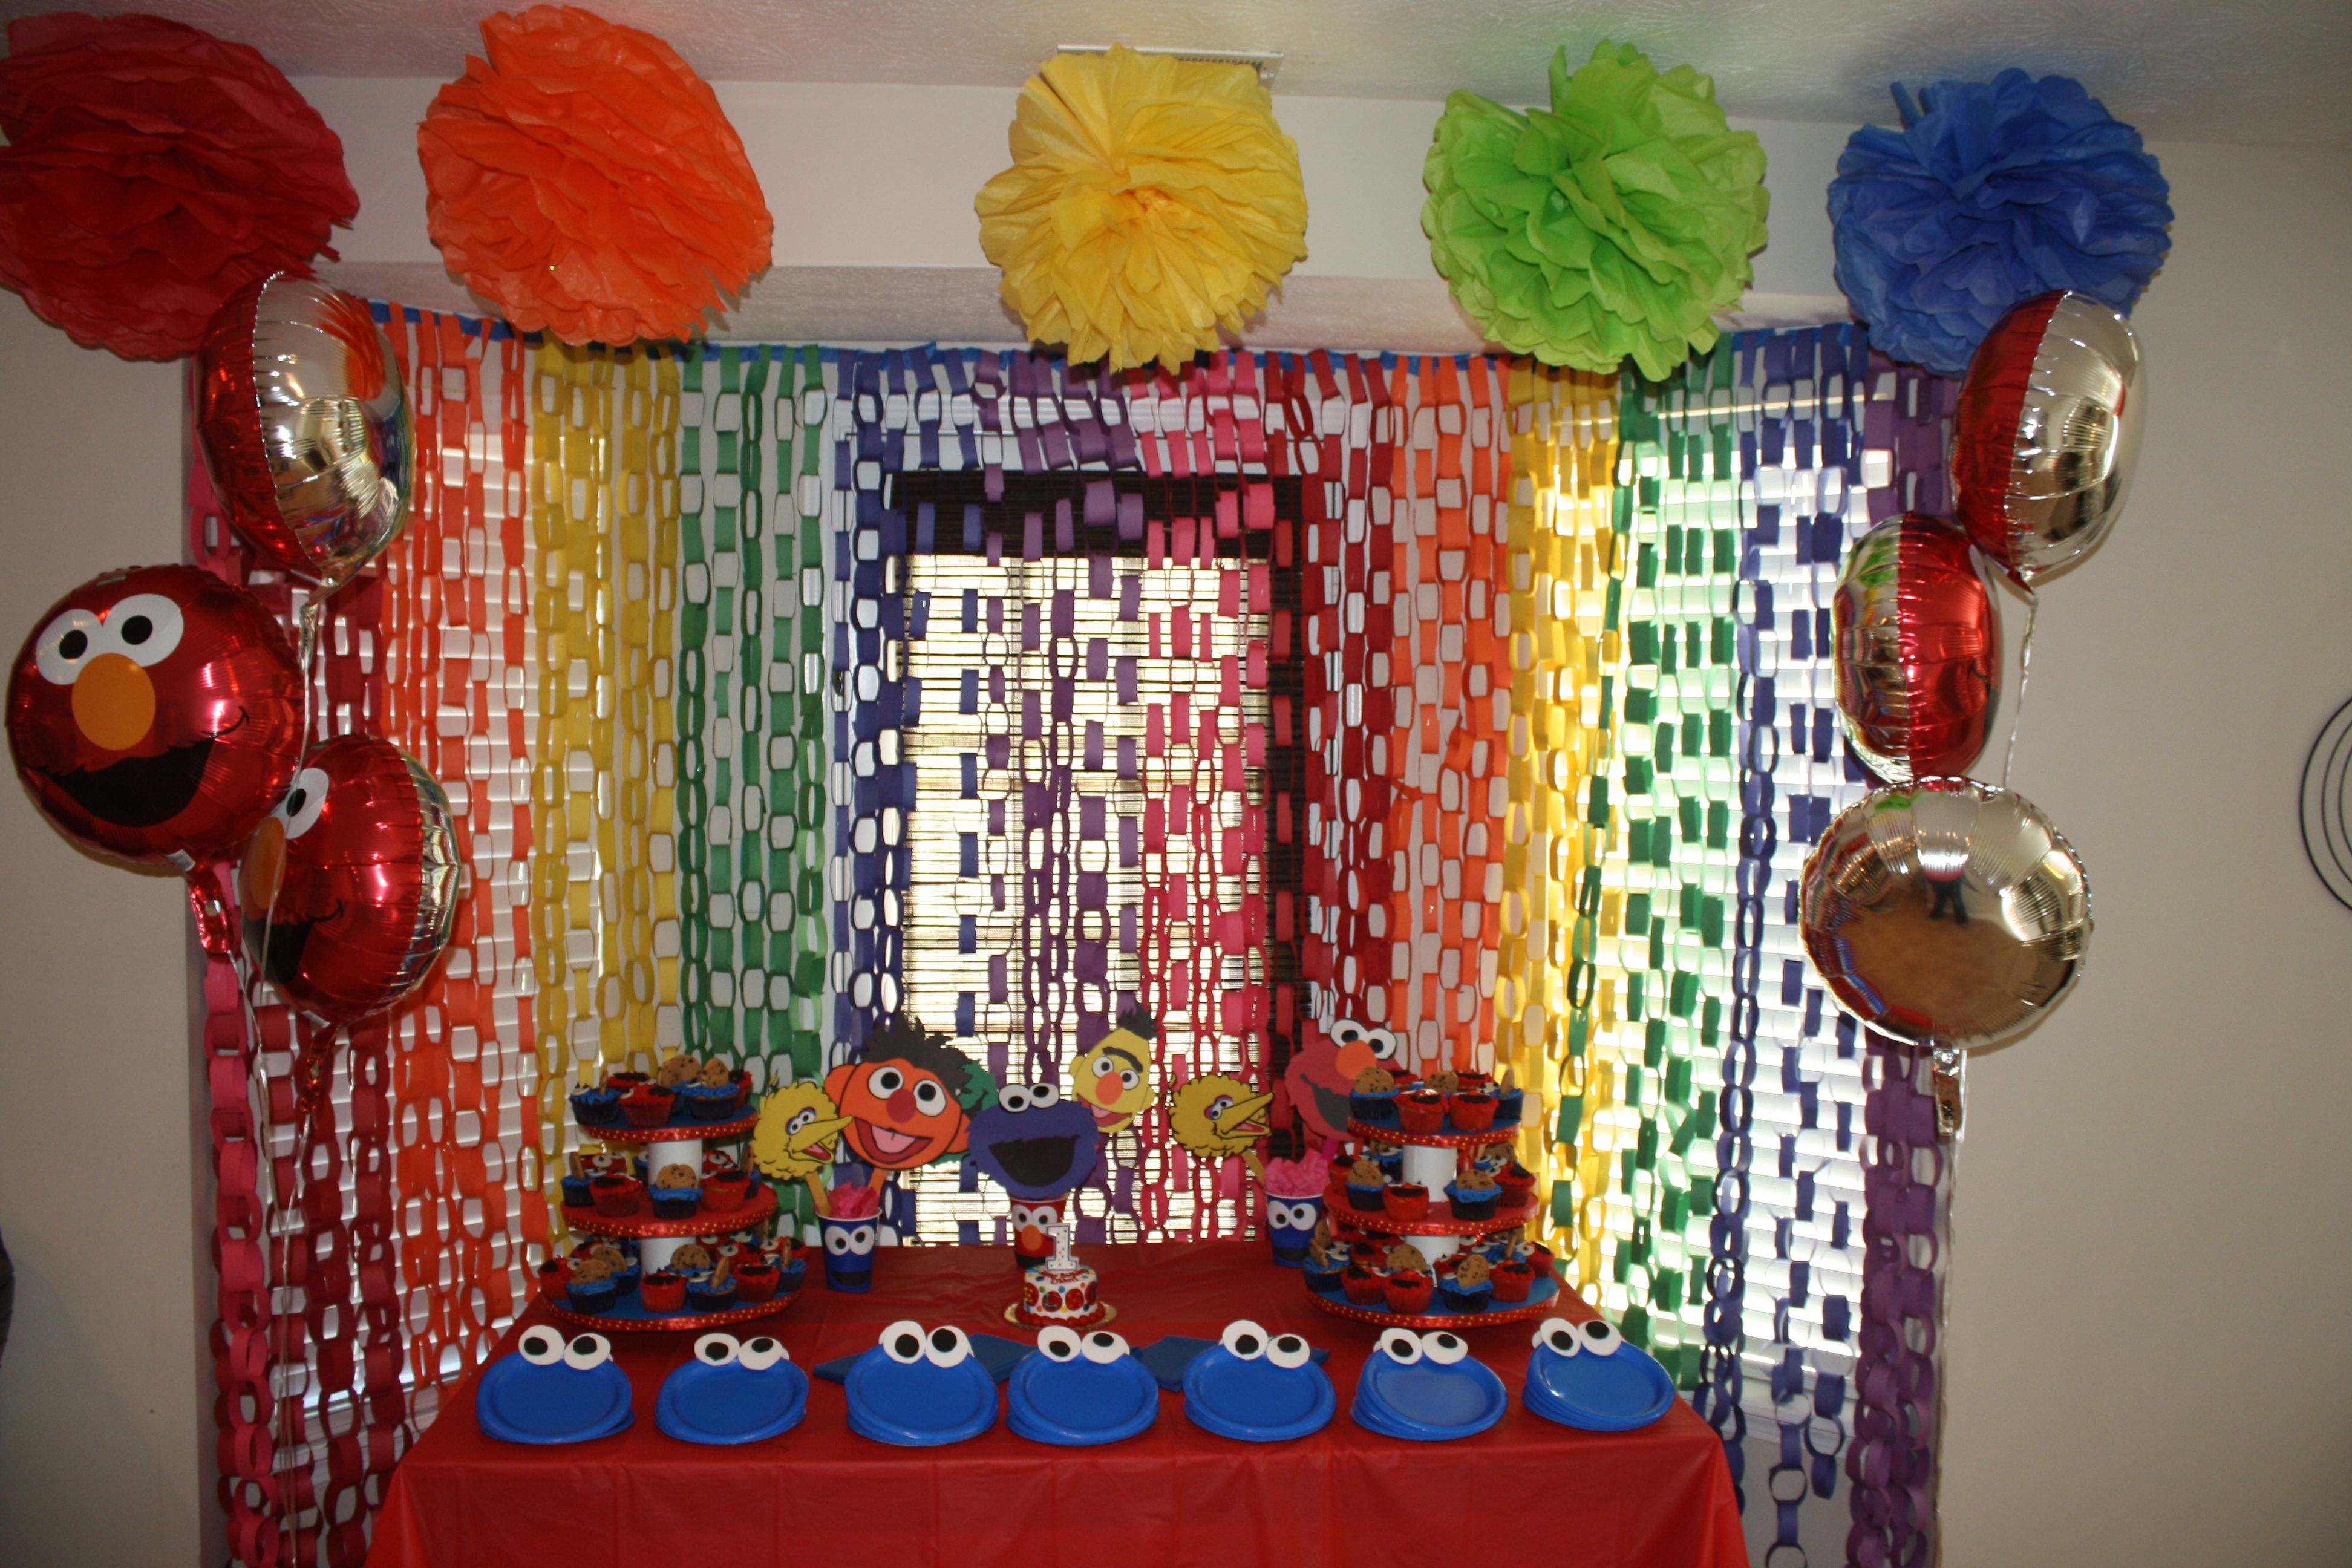 Home Made Decorations For An Elmo Sesame Street Themed Birthday Party Inspired By Other Ideas